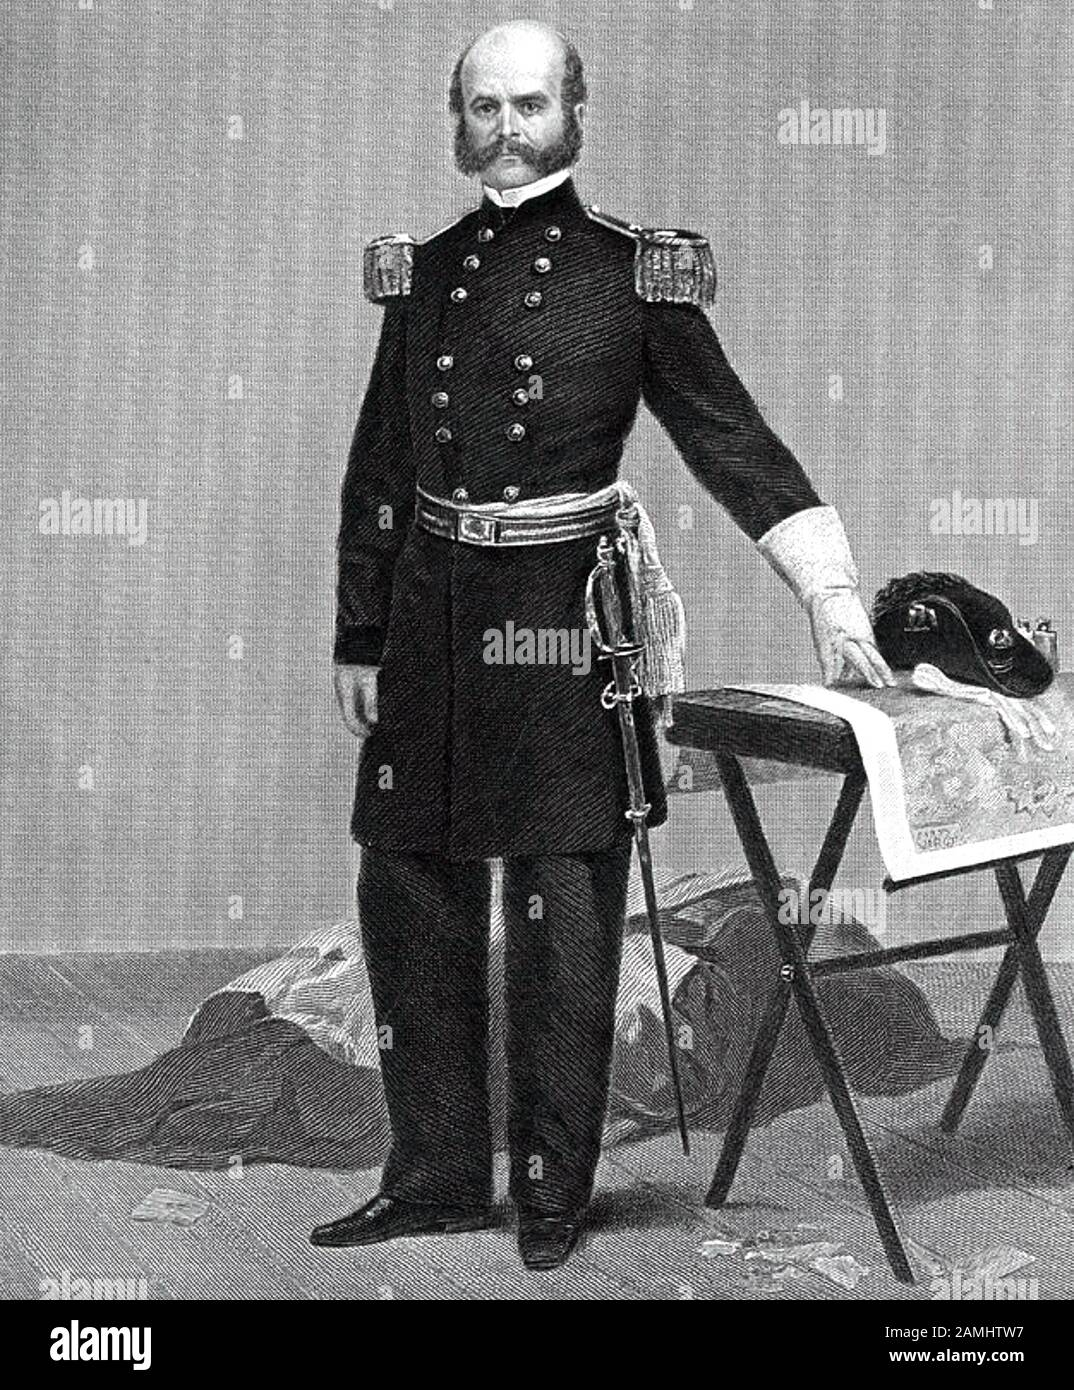 AMBROSE BURNSIDE (1824-1881) as a Union Army general in the ...